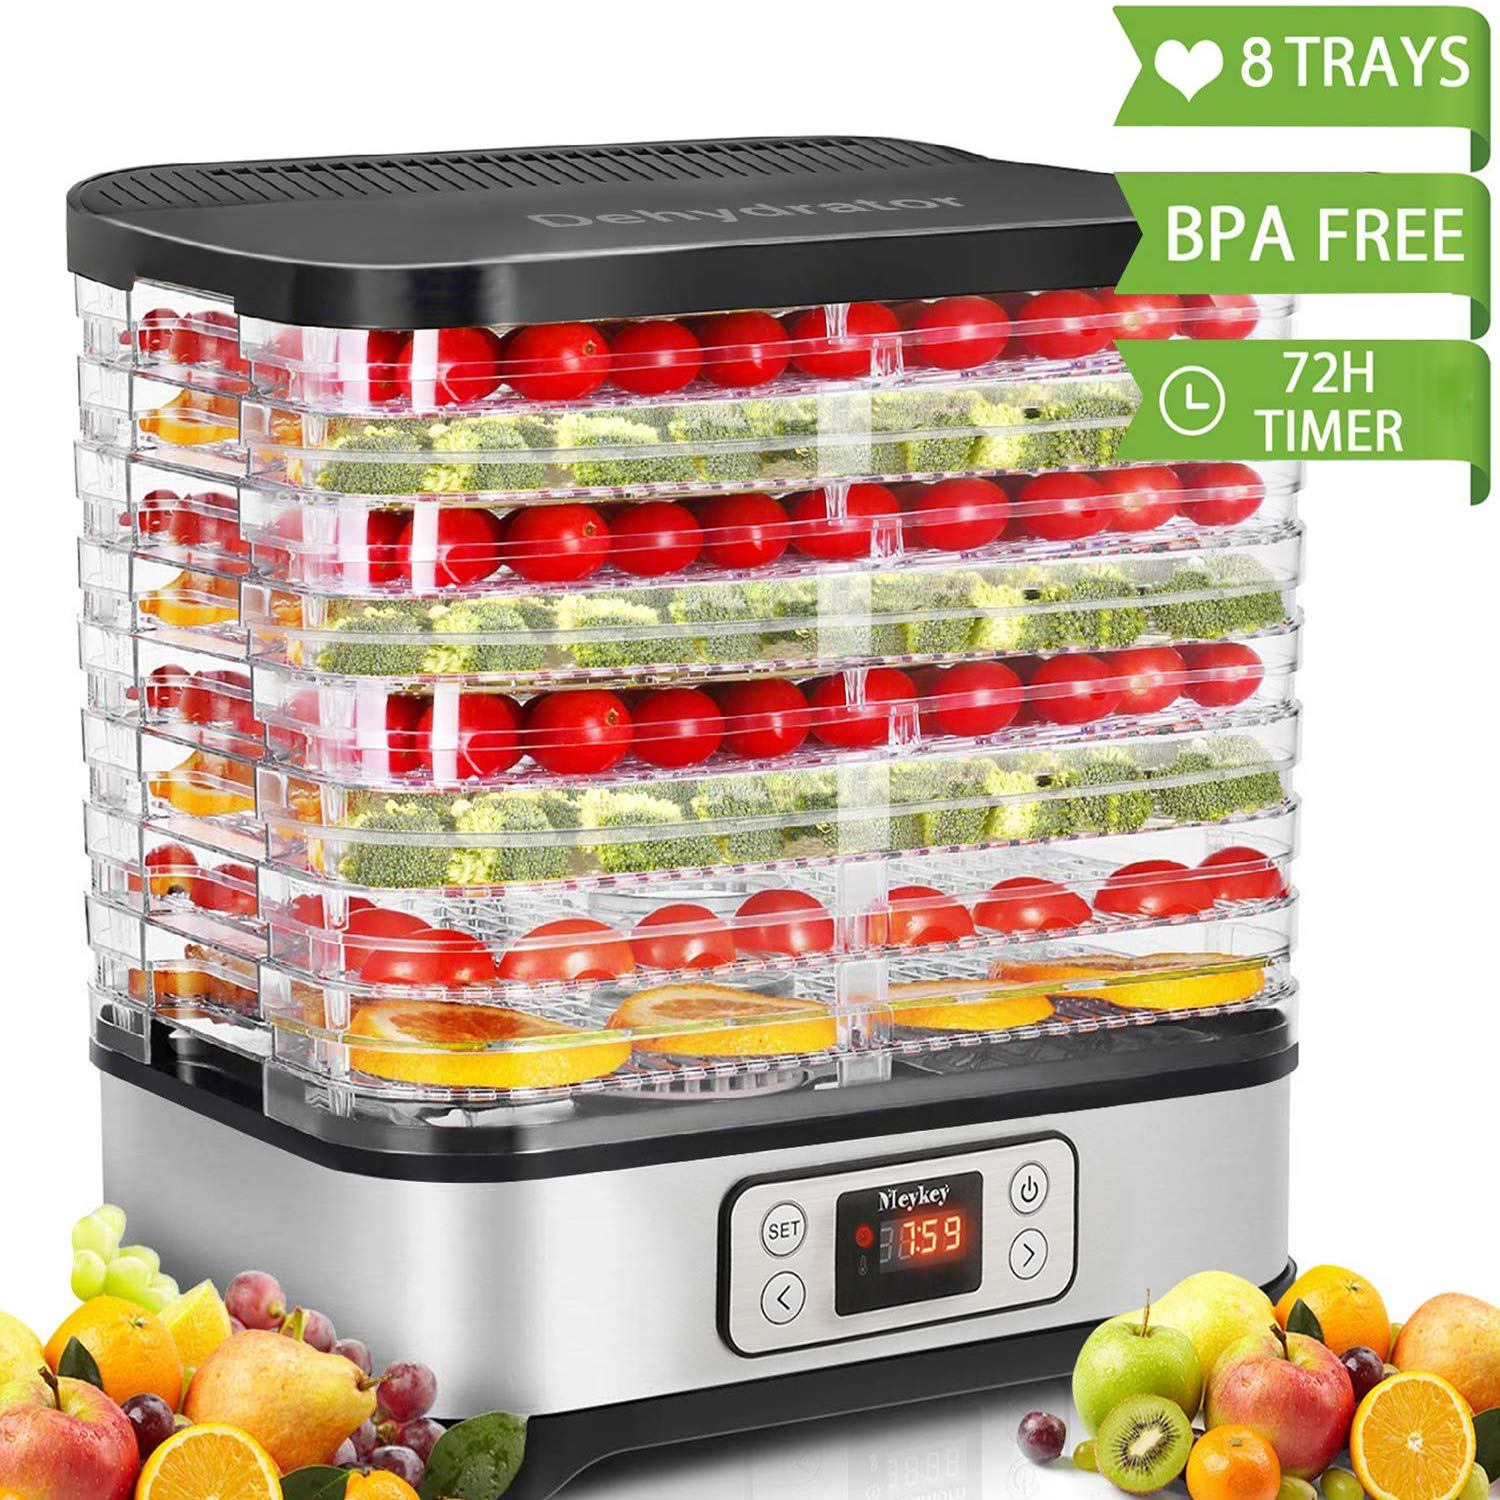 Hauture Food Dehydrator Machine, Digital Timer and Temperature Control, 8 Trays - For Beef Jerky Preserving Wild Food and Fruit Vegetable Dryer in Home Kitchen, BPA Free/400 Watt by Hauture (Image #1)